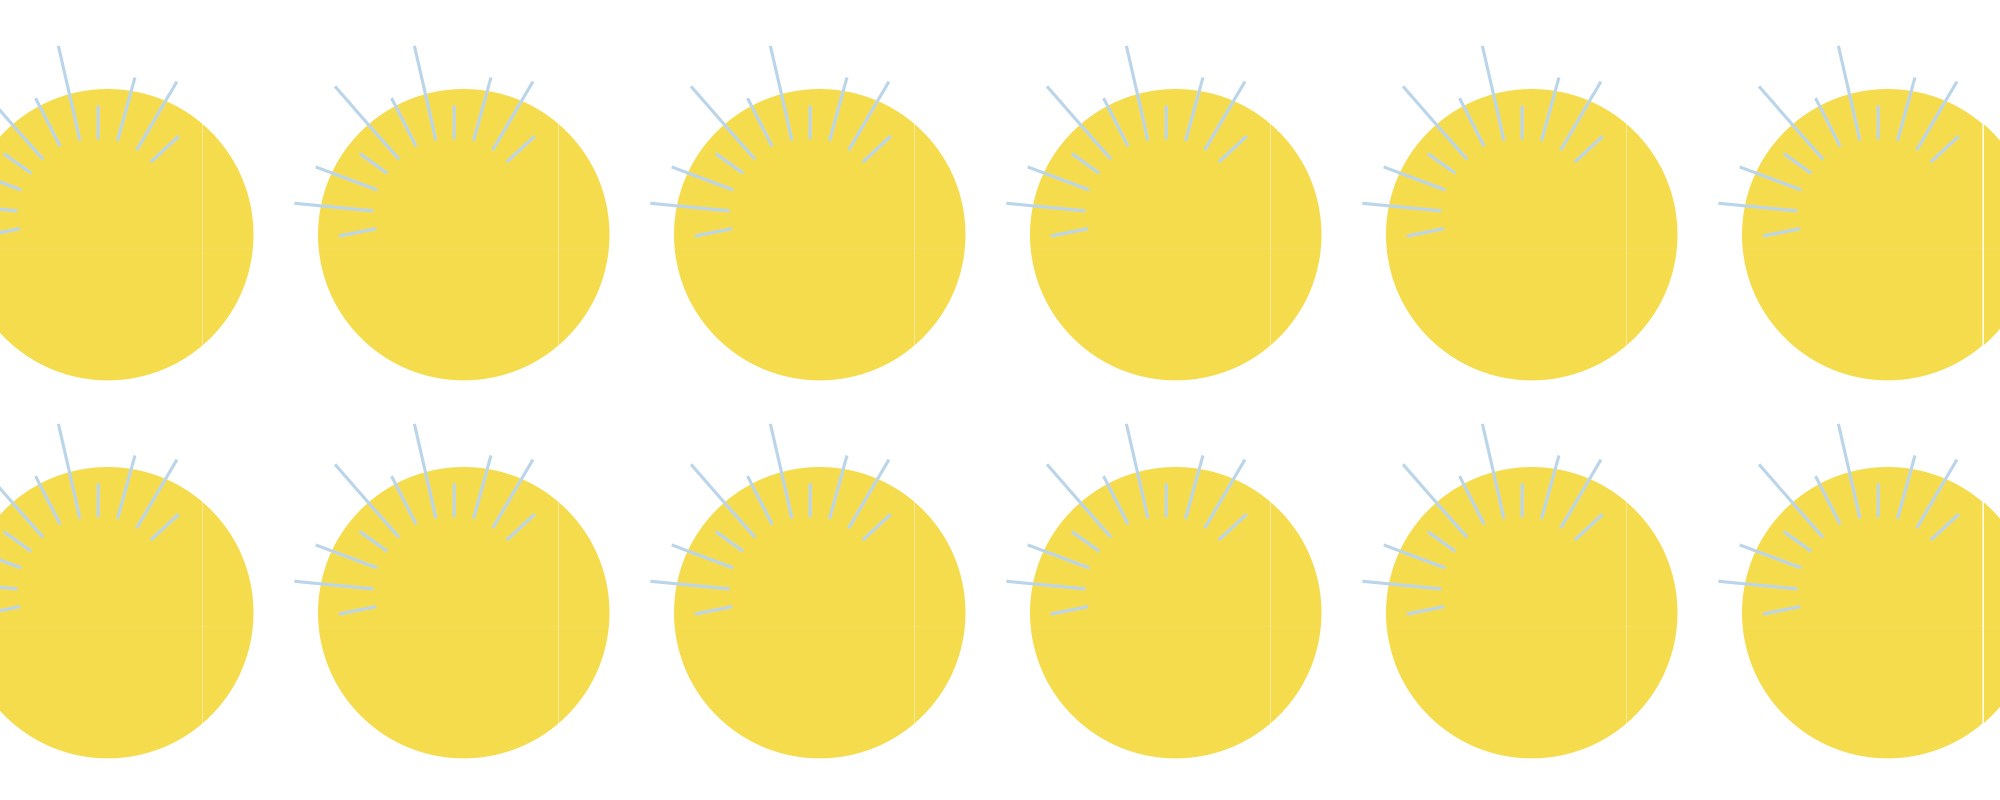 Yellow circle pattern with line detail